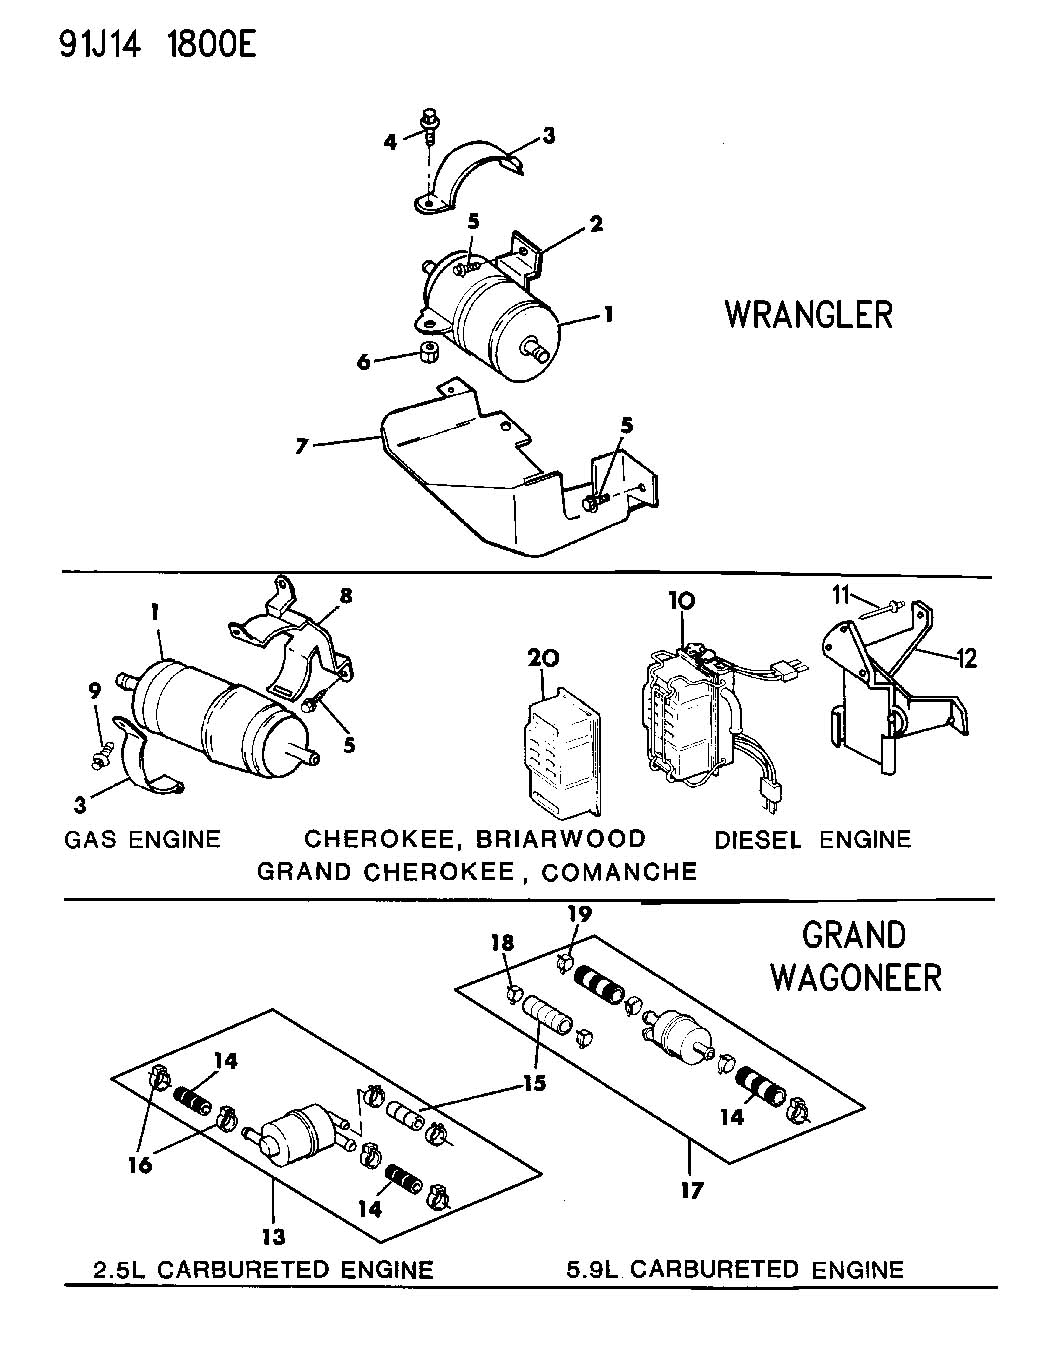 Jeep Yj Fuel Filter Auto Electrical Wiring Diagram 93 Wrangler Parts